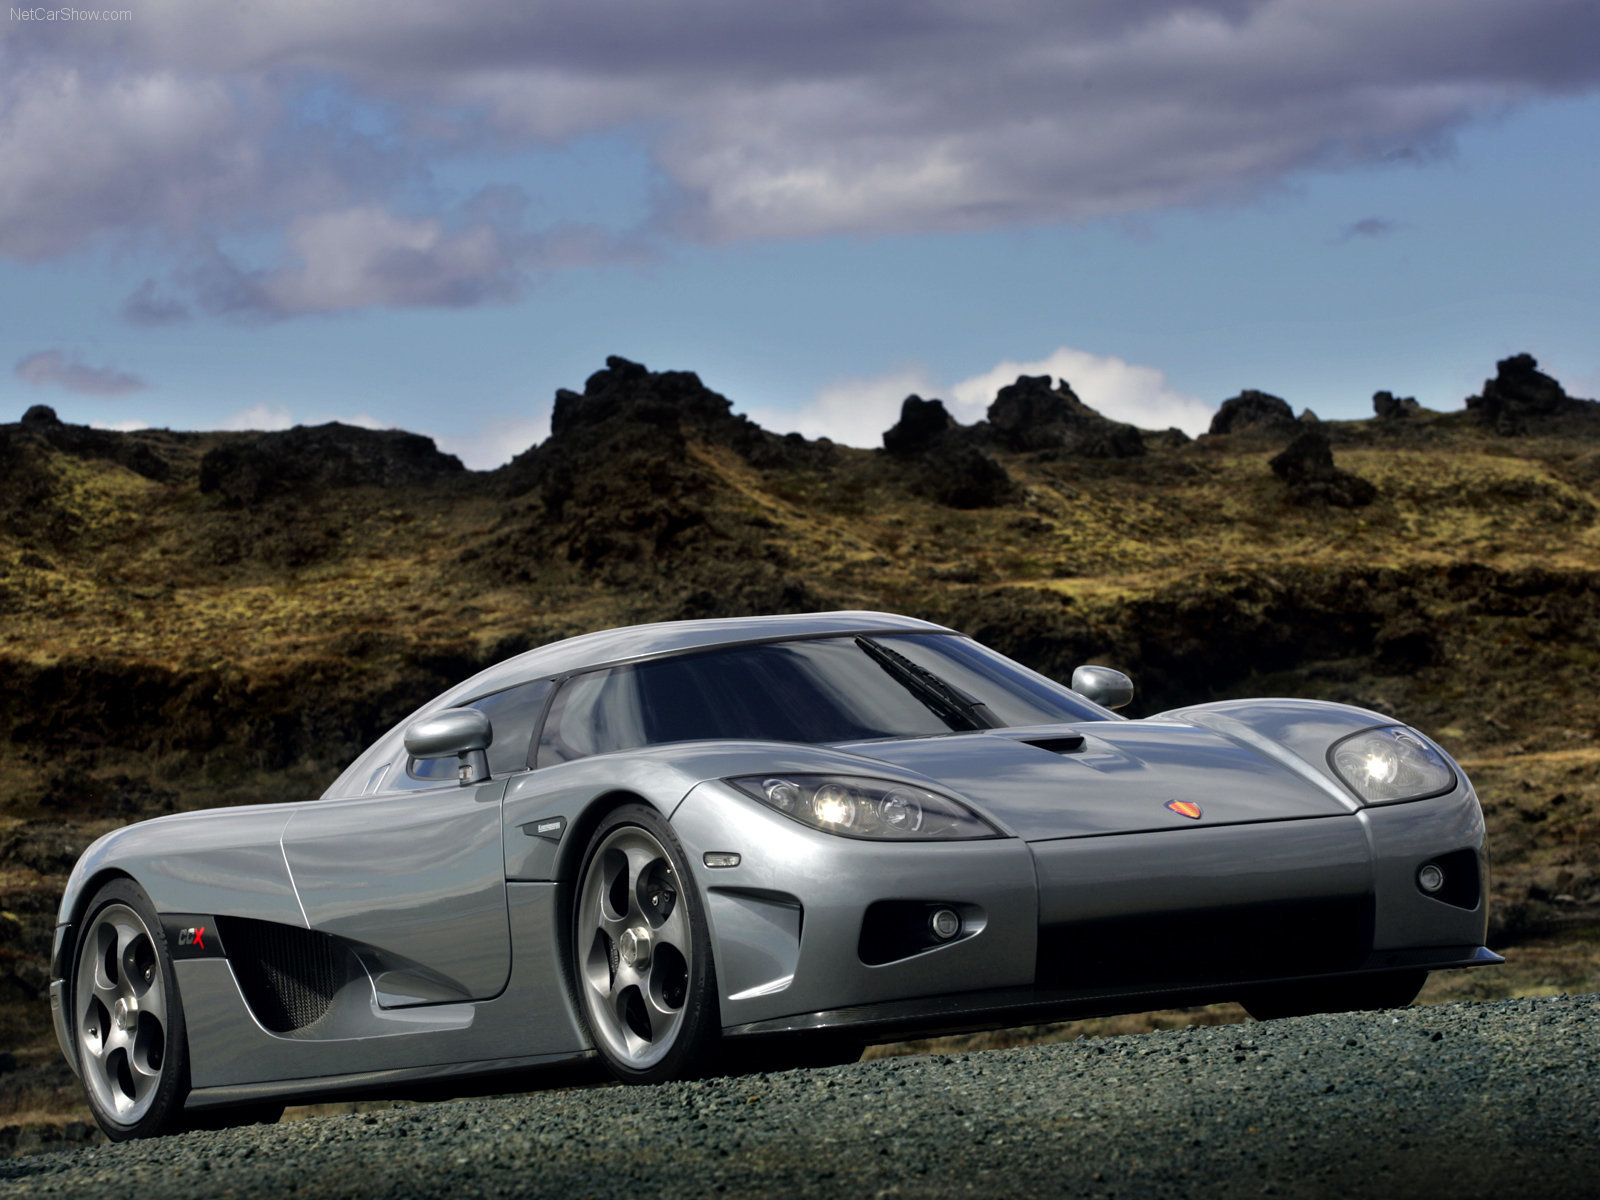 cars vehicles sports cars HD Wallpaper